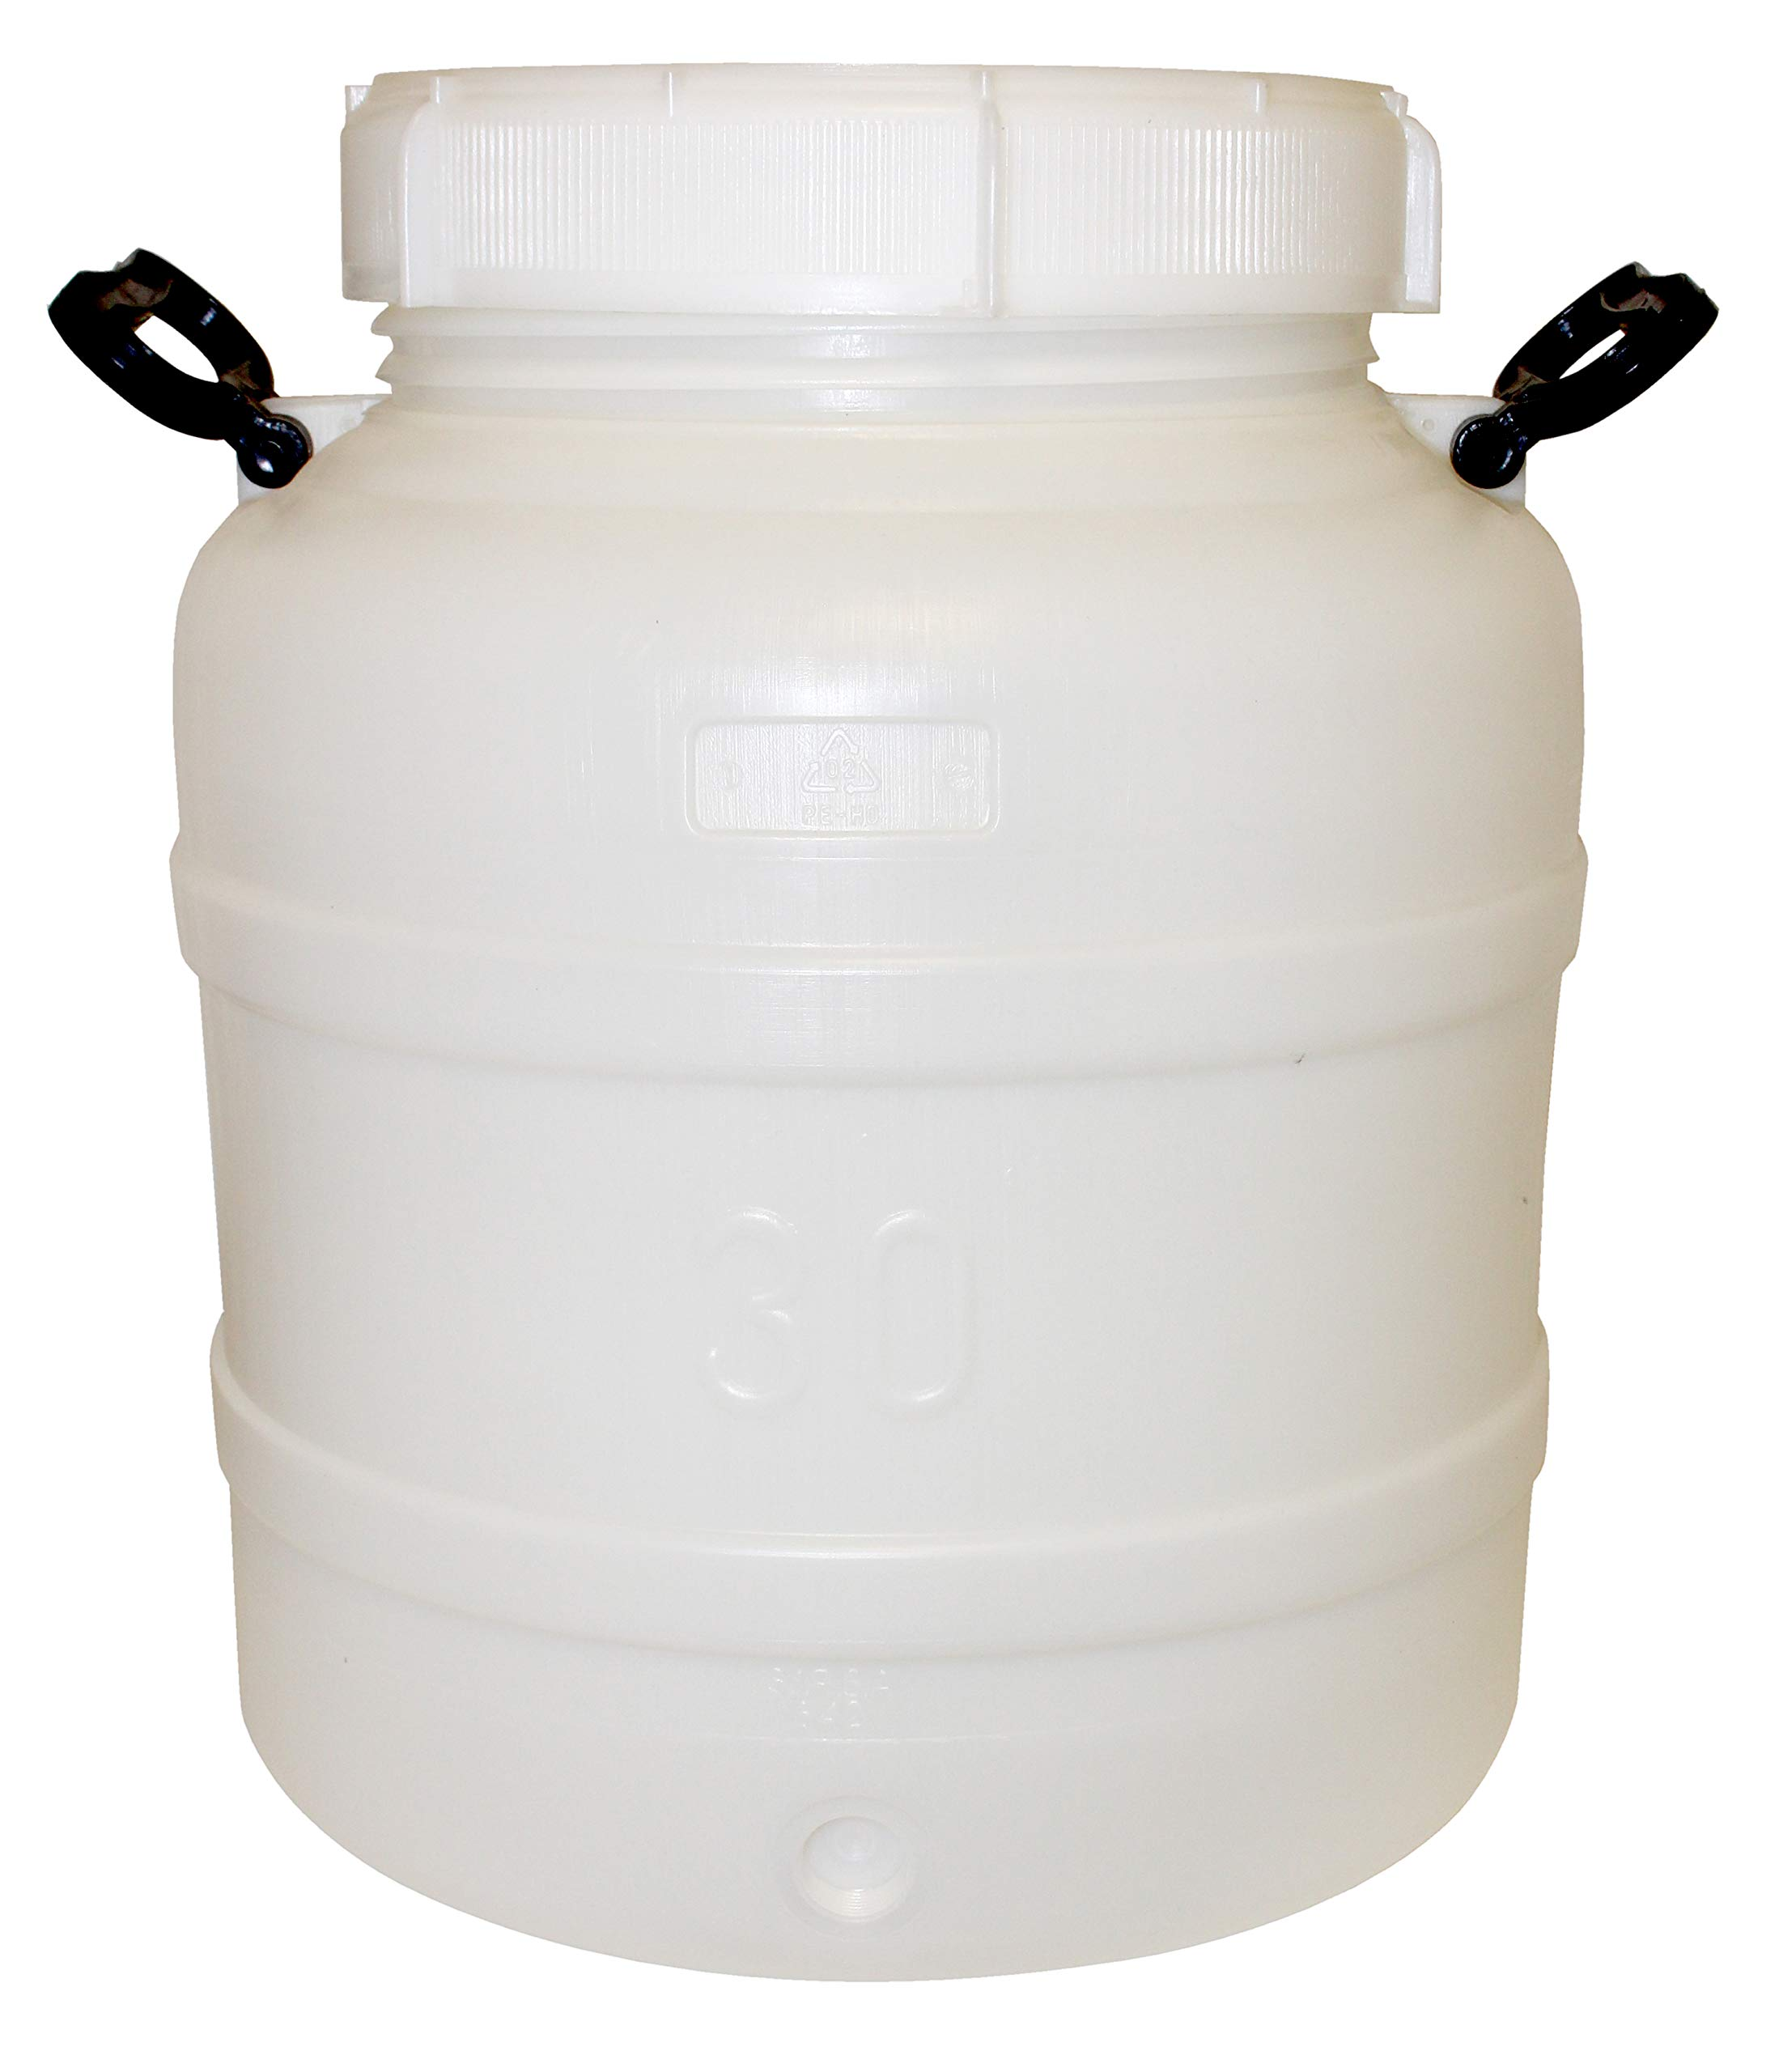 Home Brew Ohio Hurricane Prep Water Container Portable 30 Liter (7.9 Gallons) With Optional Spigot by LD Carlson